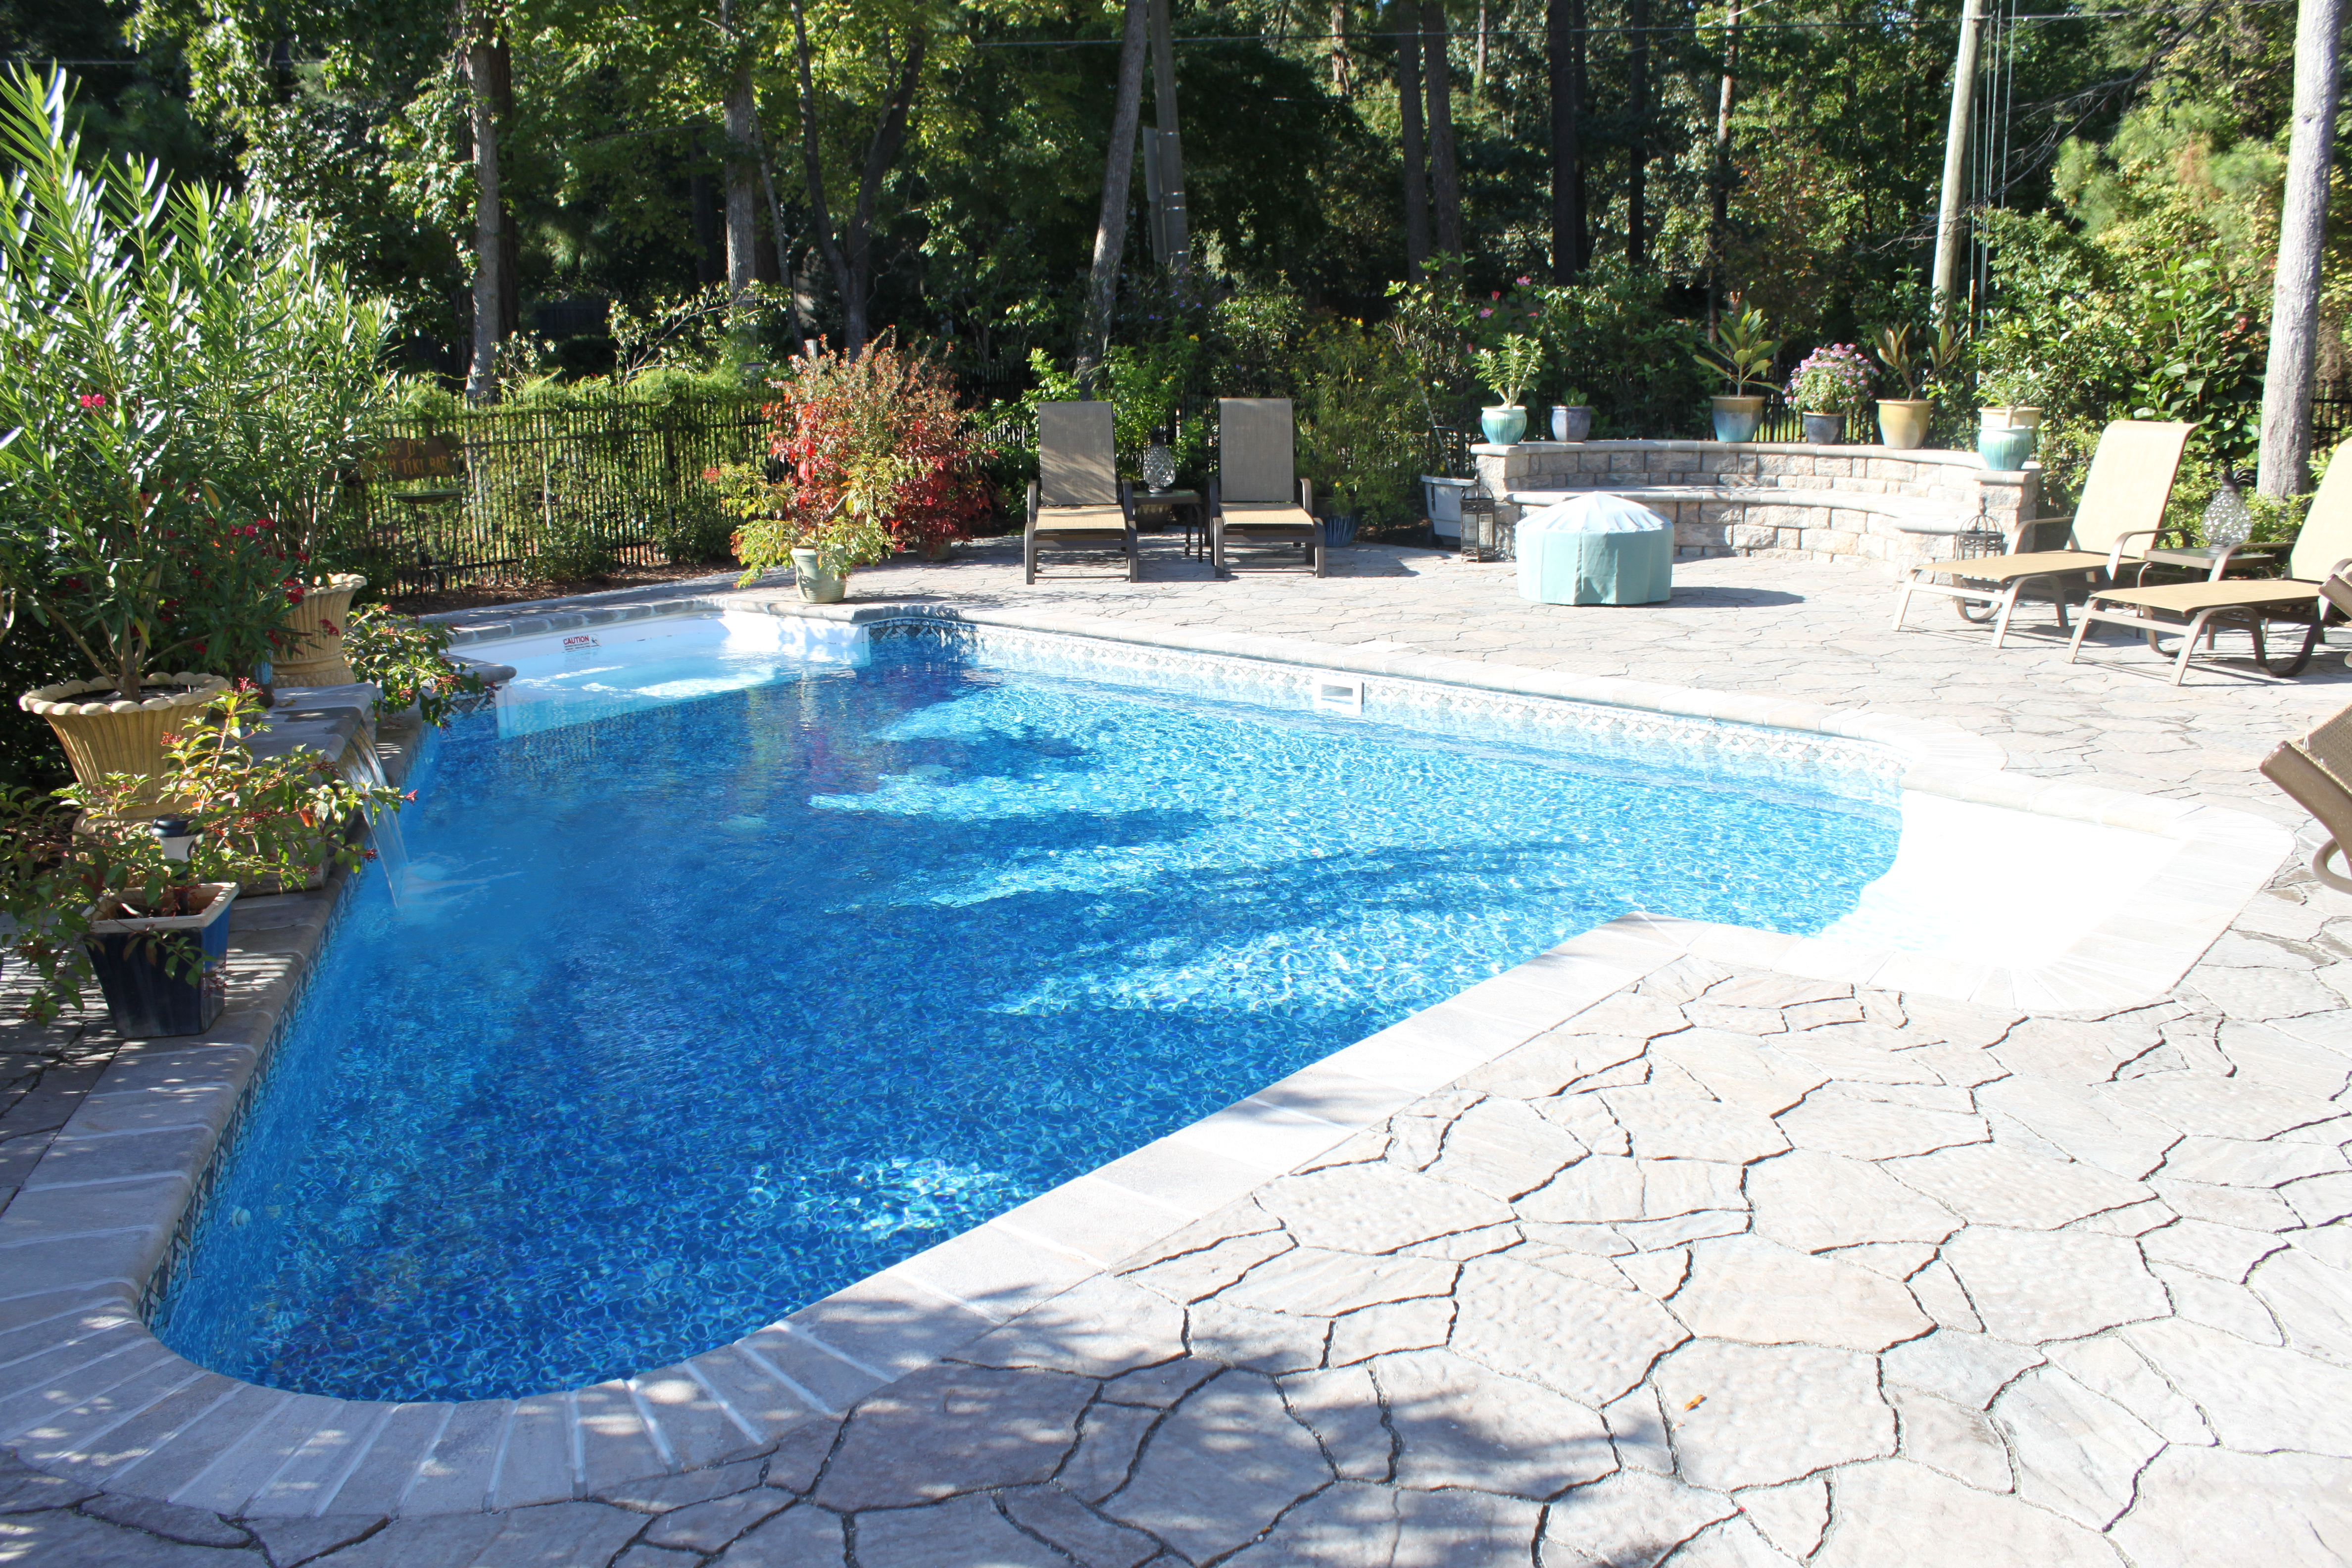 Patio pool 4a